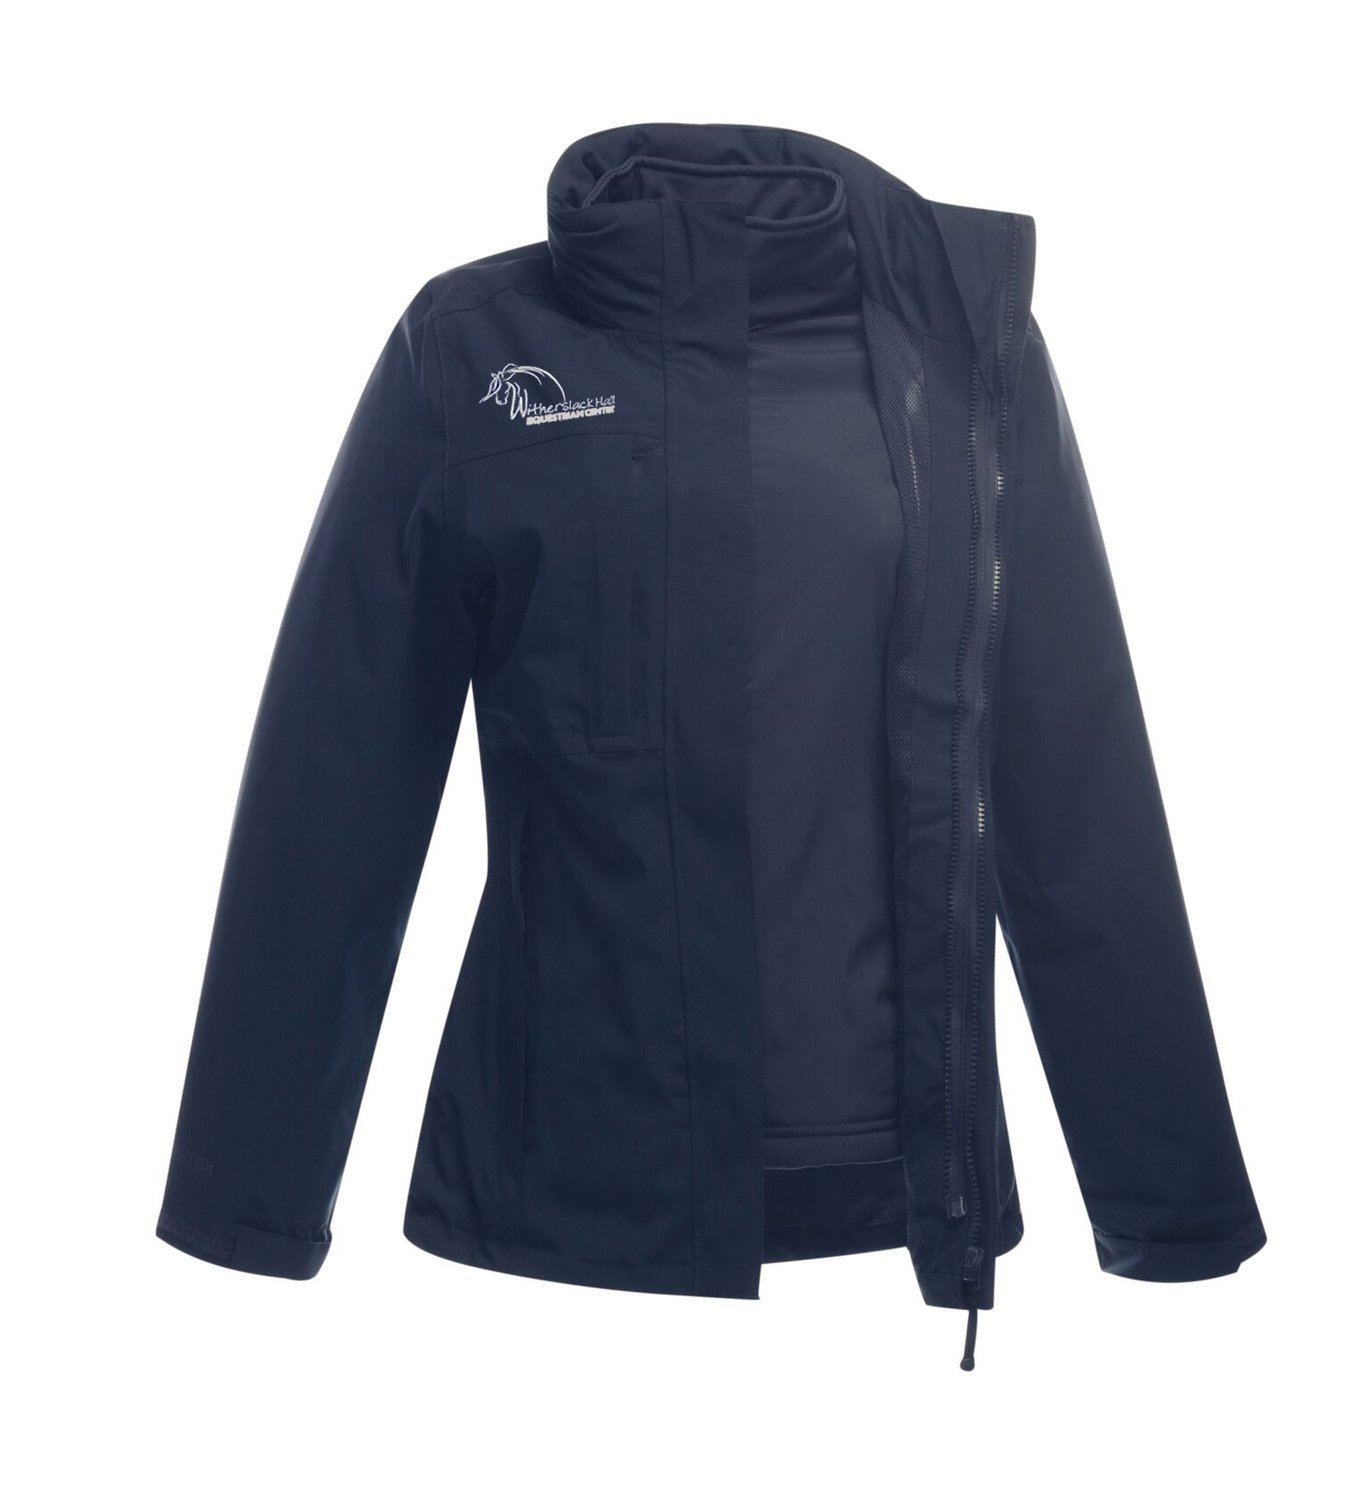 WHEC Womens Kingsley 3-in-1 jacket